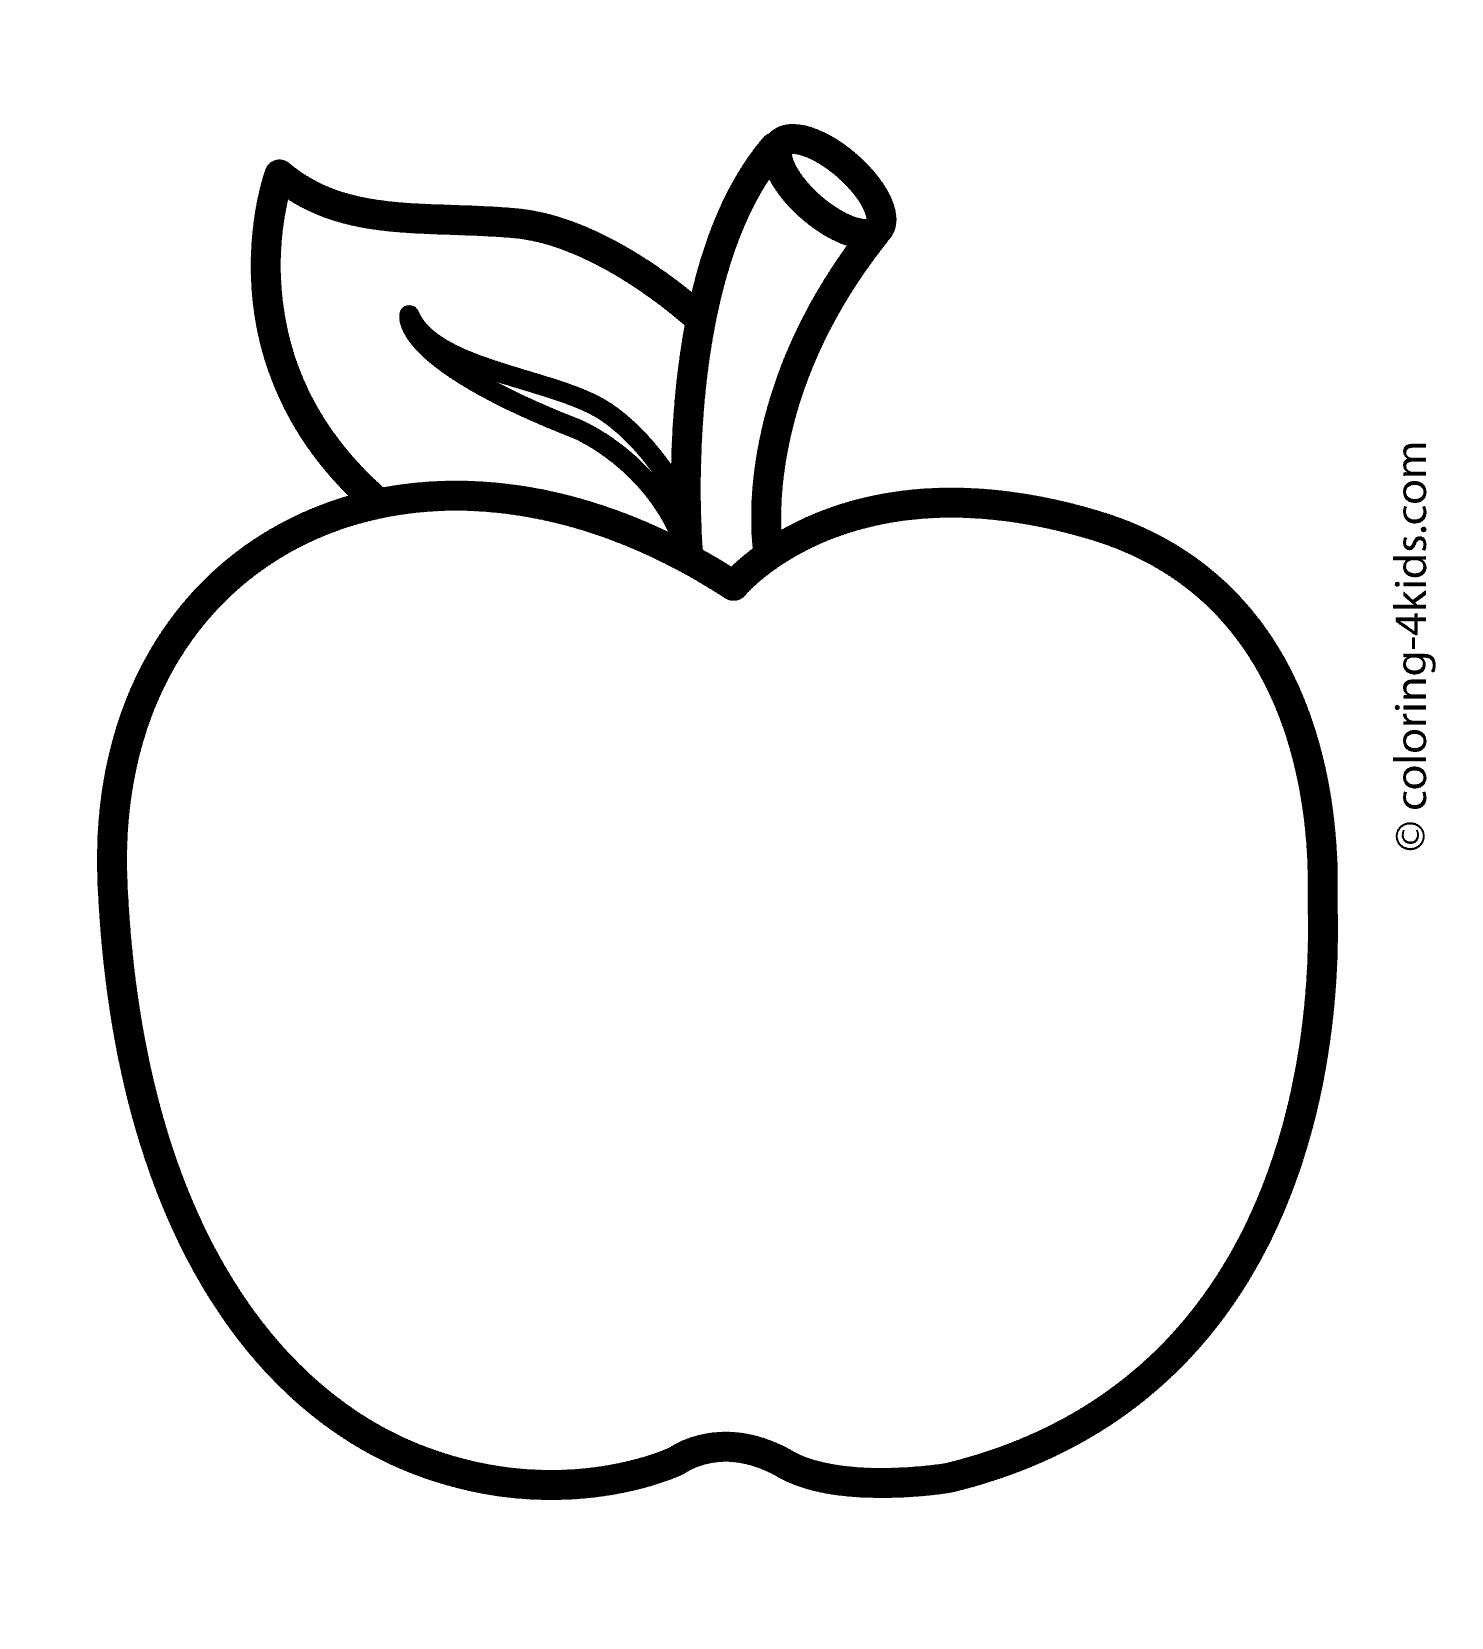 Apple clipart printable, Picture #228861 apple clipart printable.